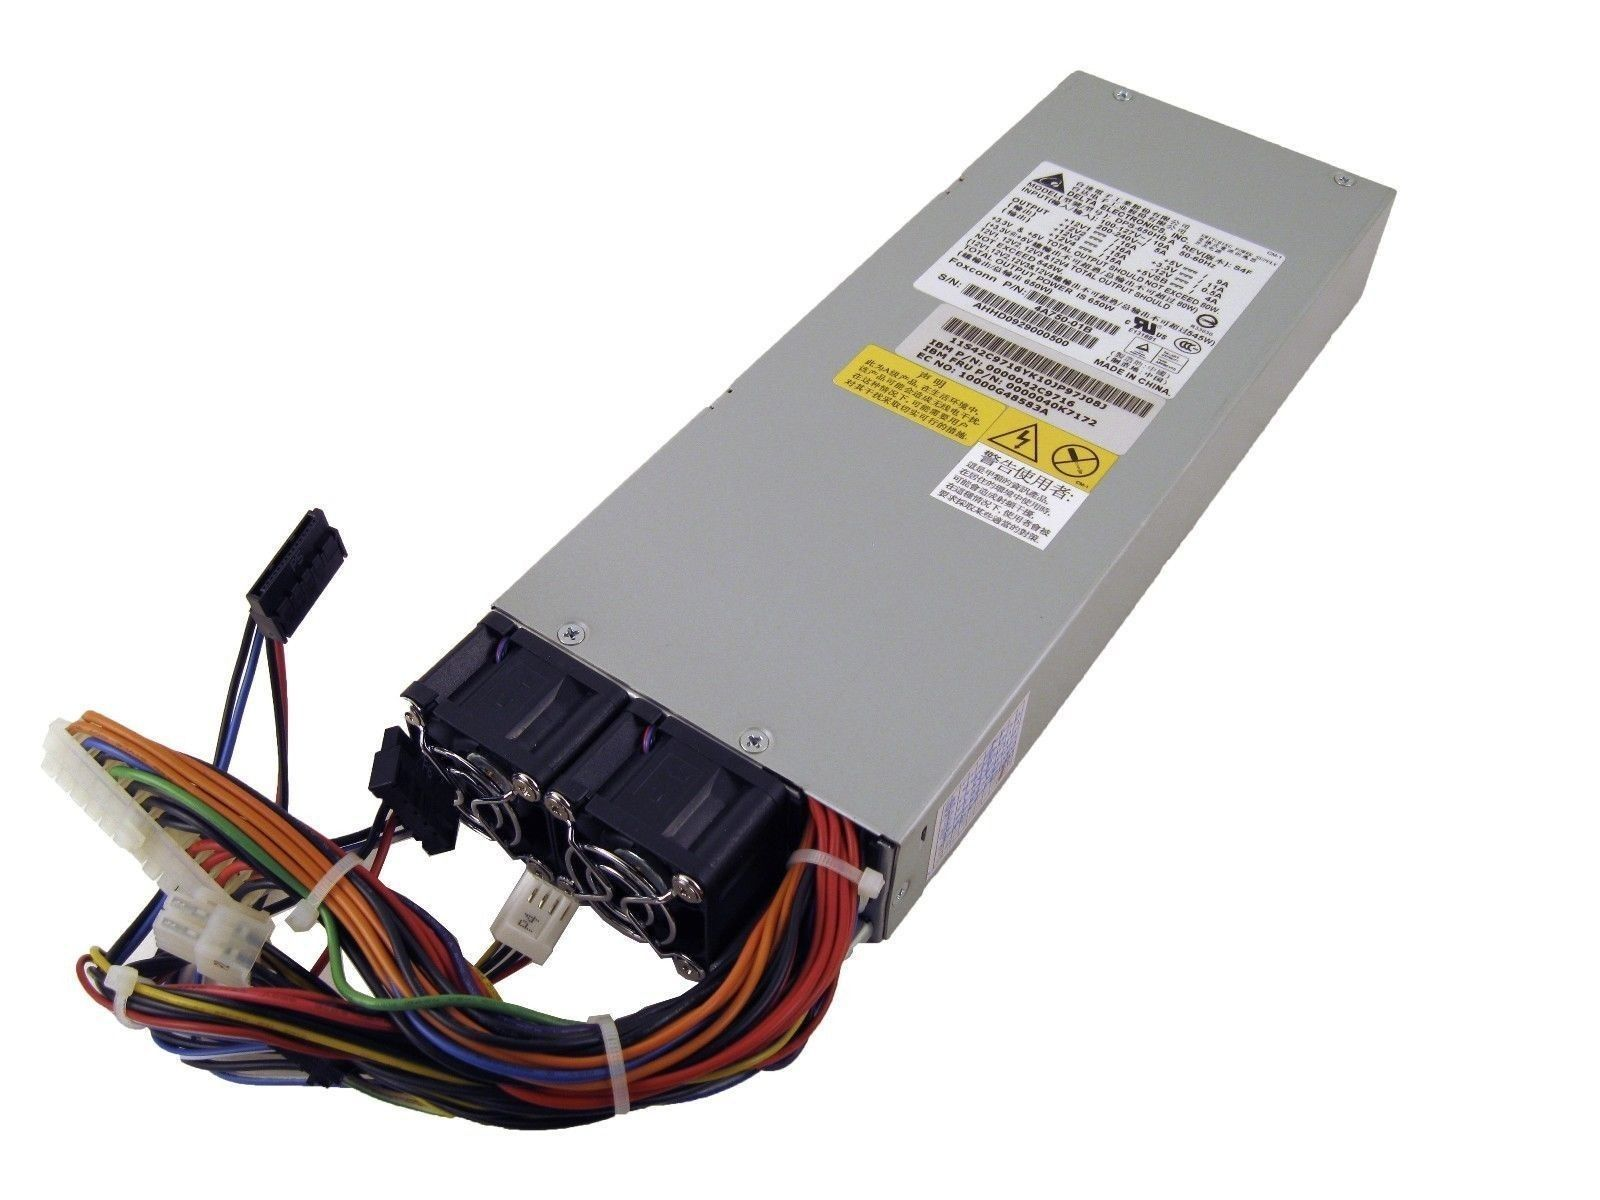 IBM 40K7172 Lenovo Power Supply 650W 42C9716 FRU DPS-650HB S4F 4A750-01B